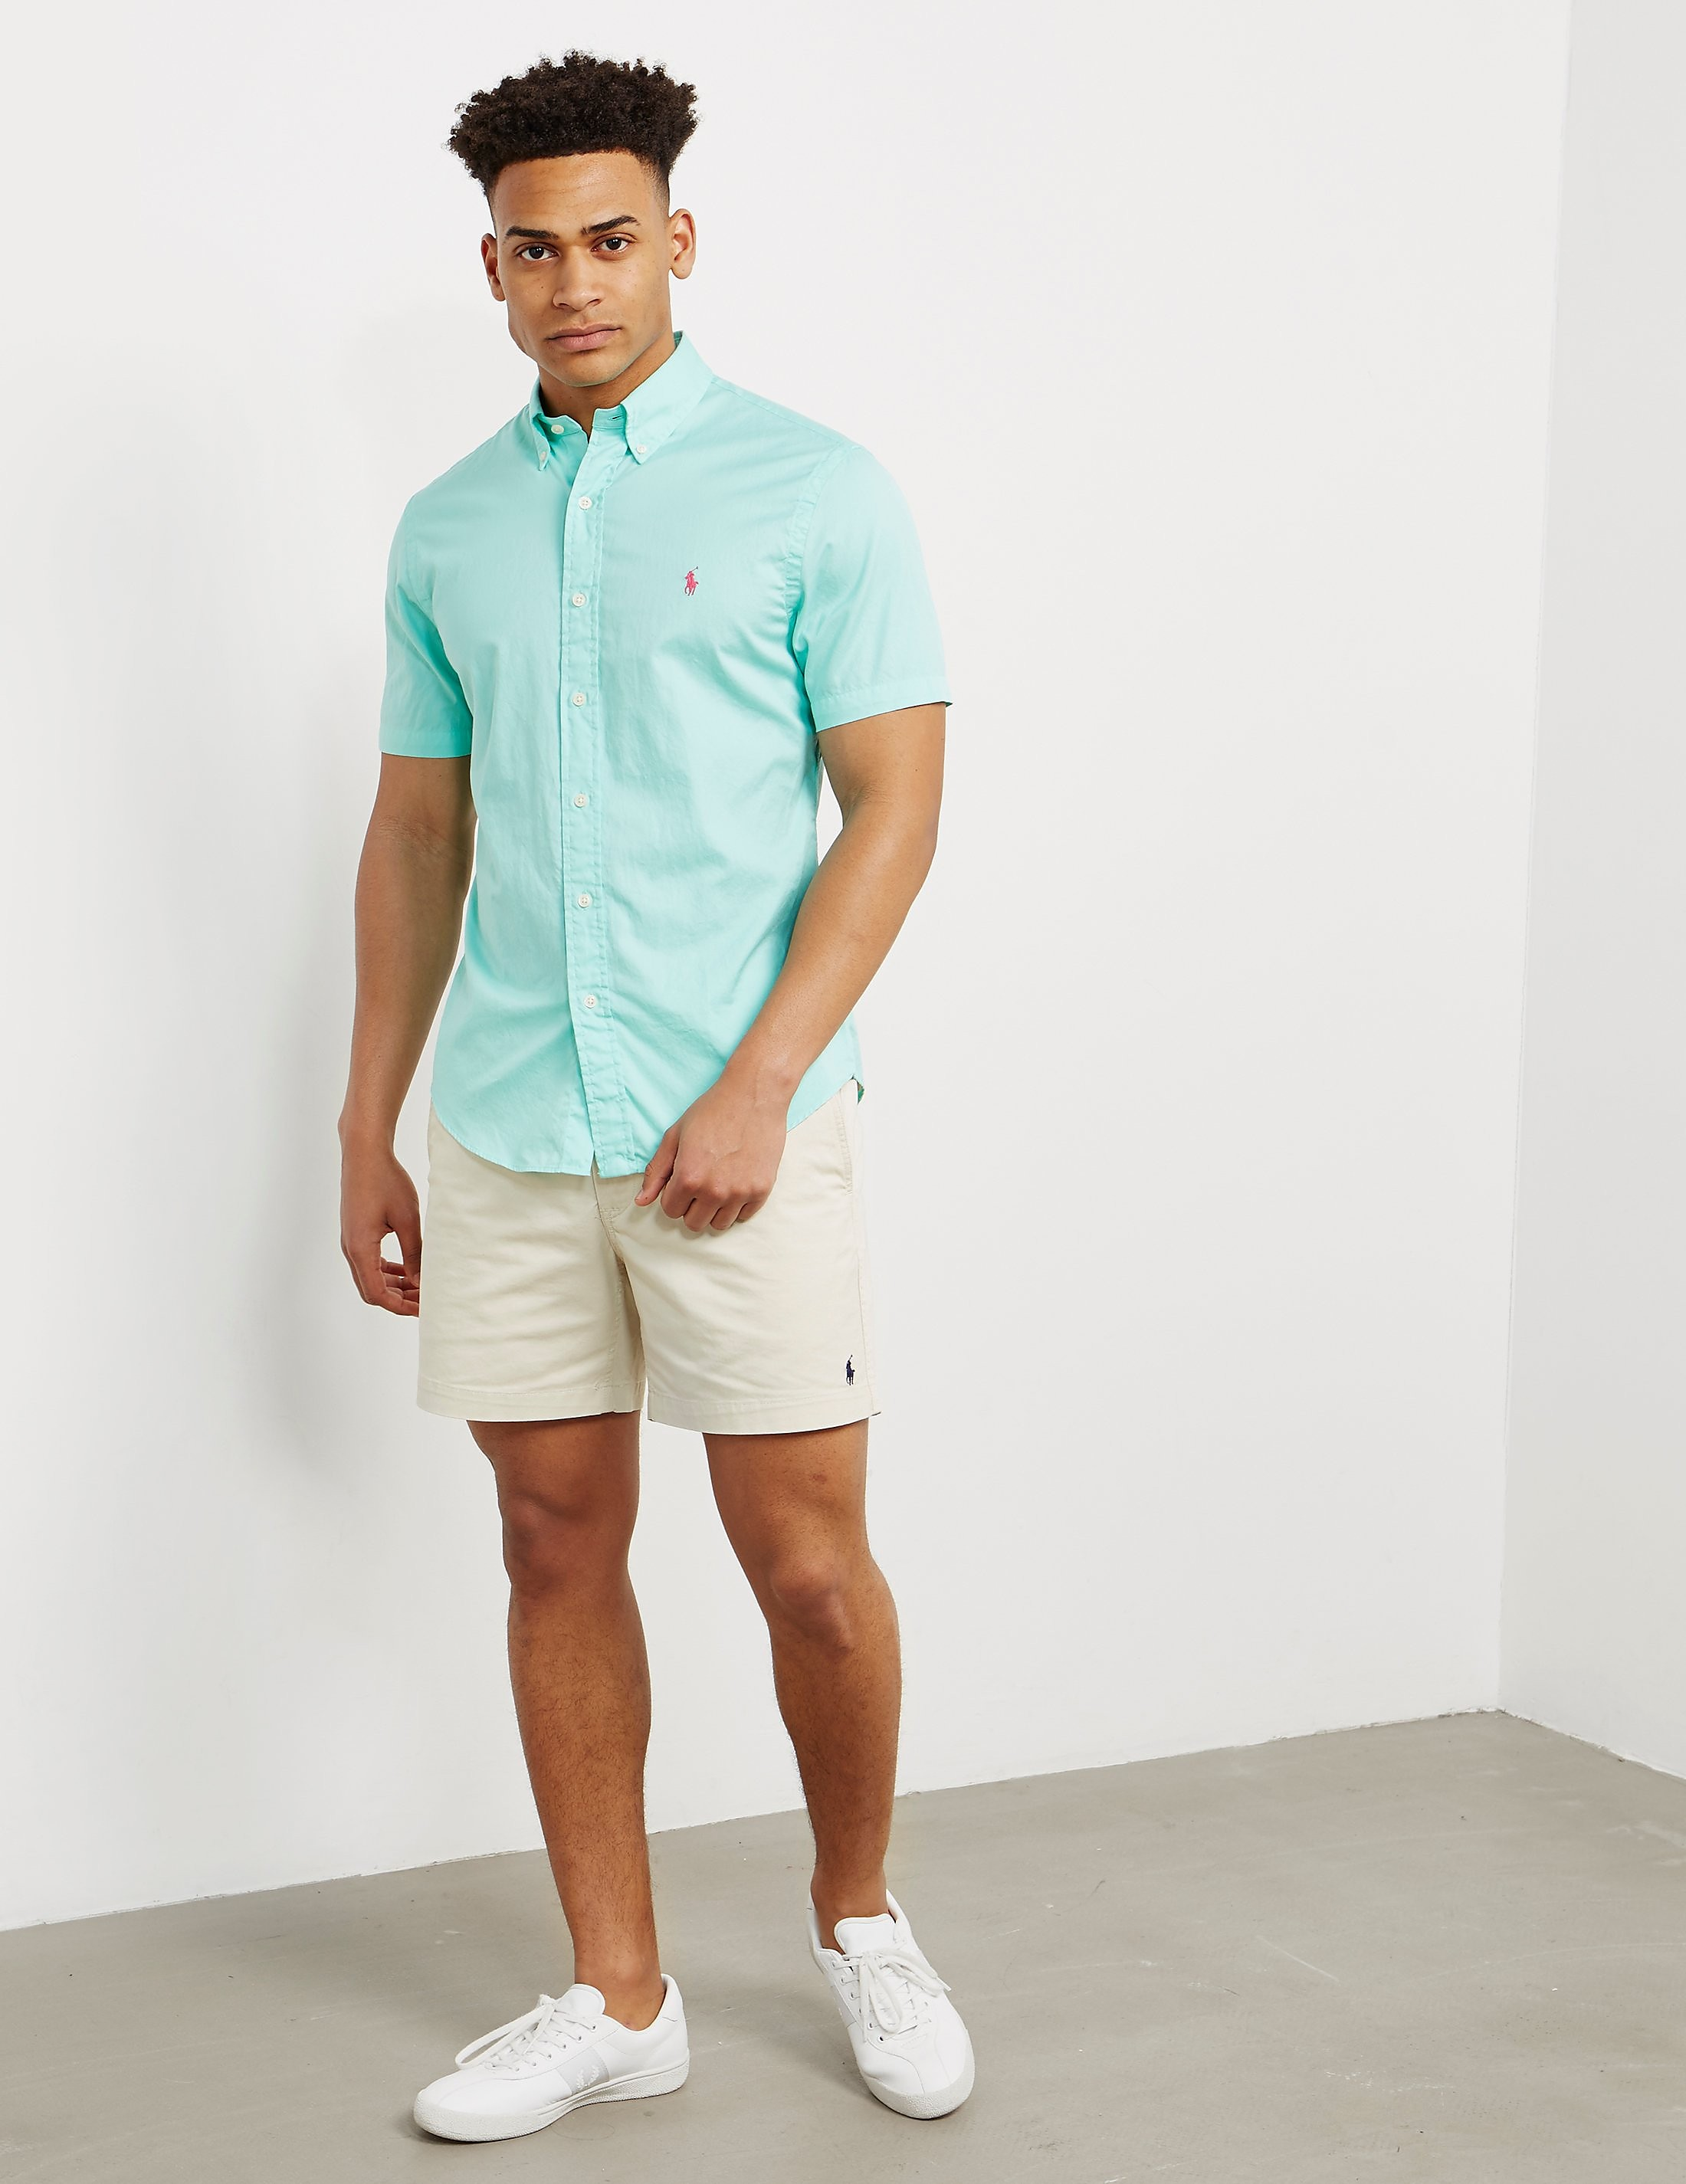 Polo Ralph Lauren Chino Short Sleeve Shirt